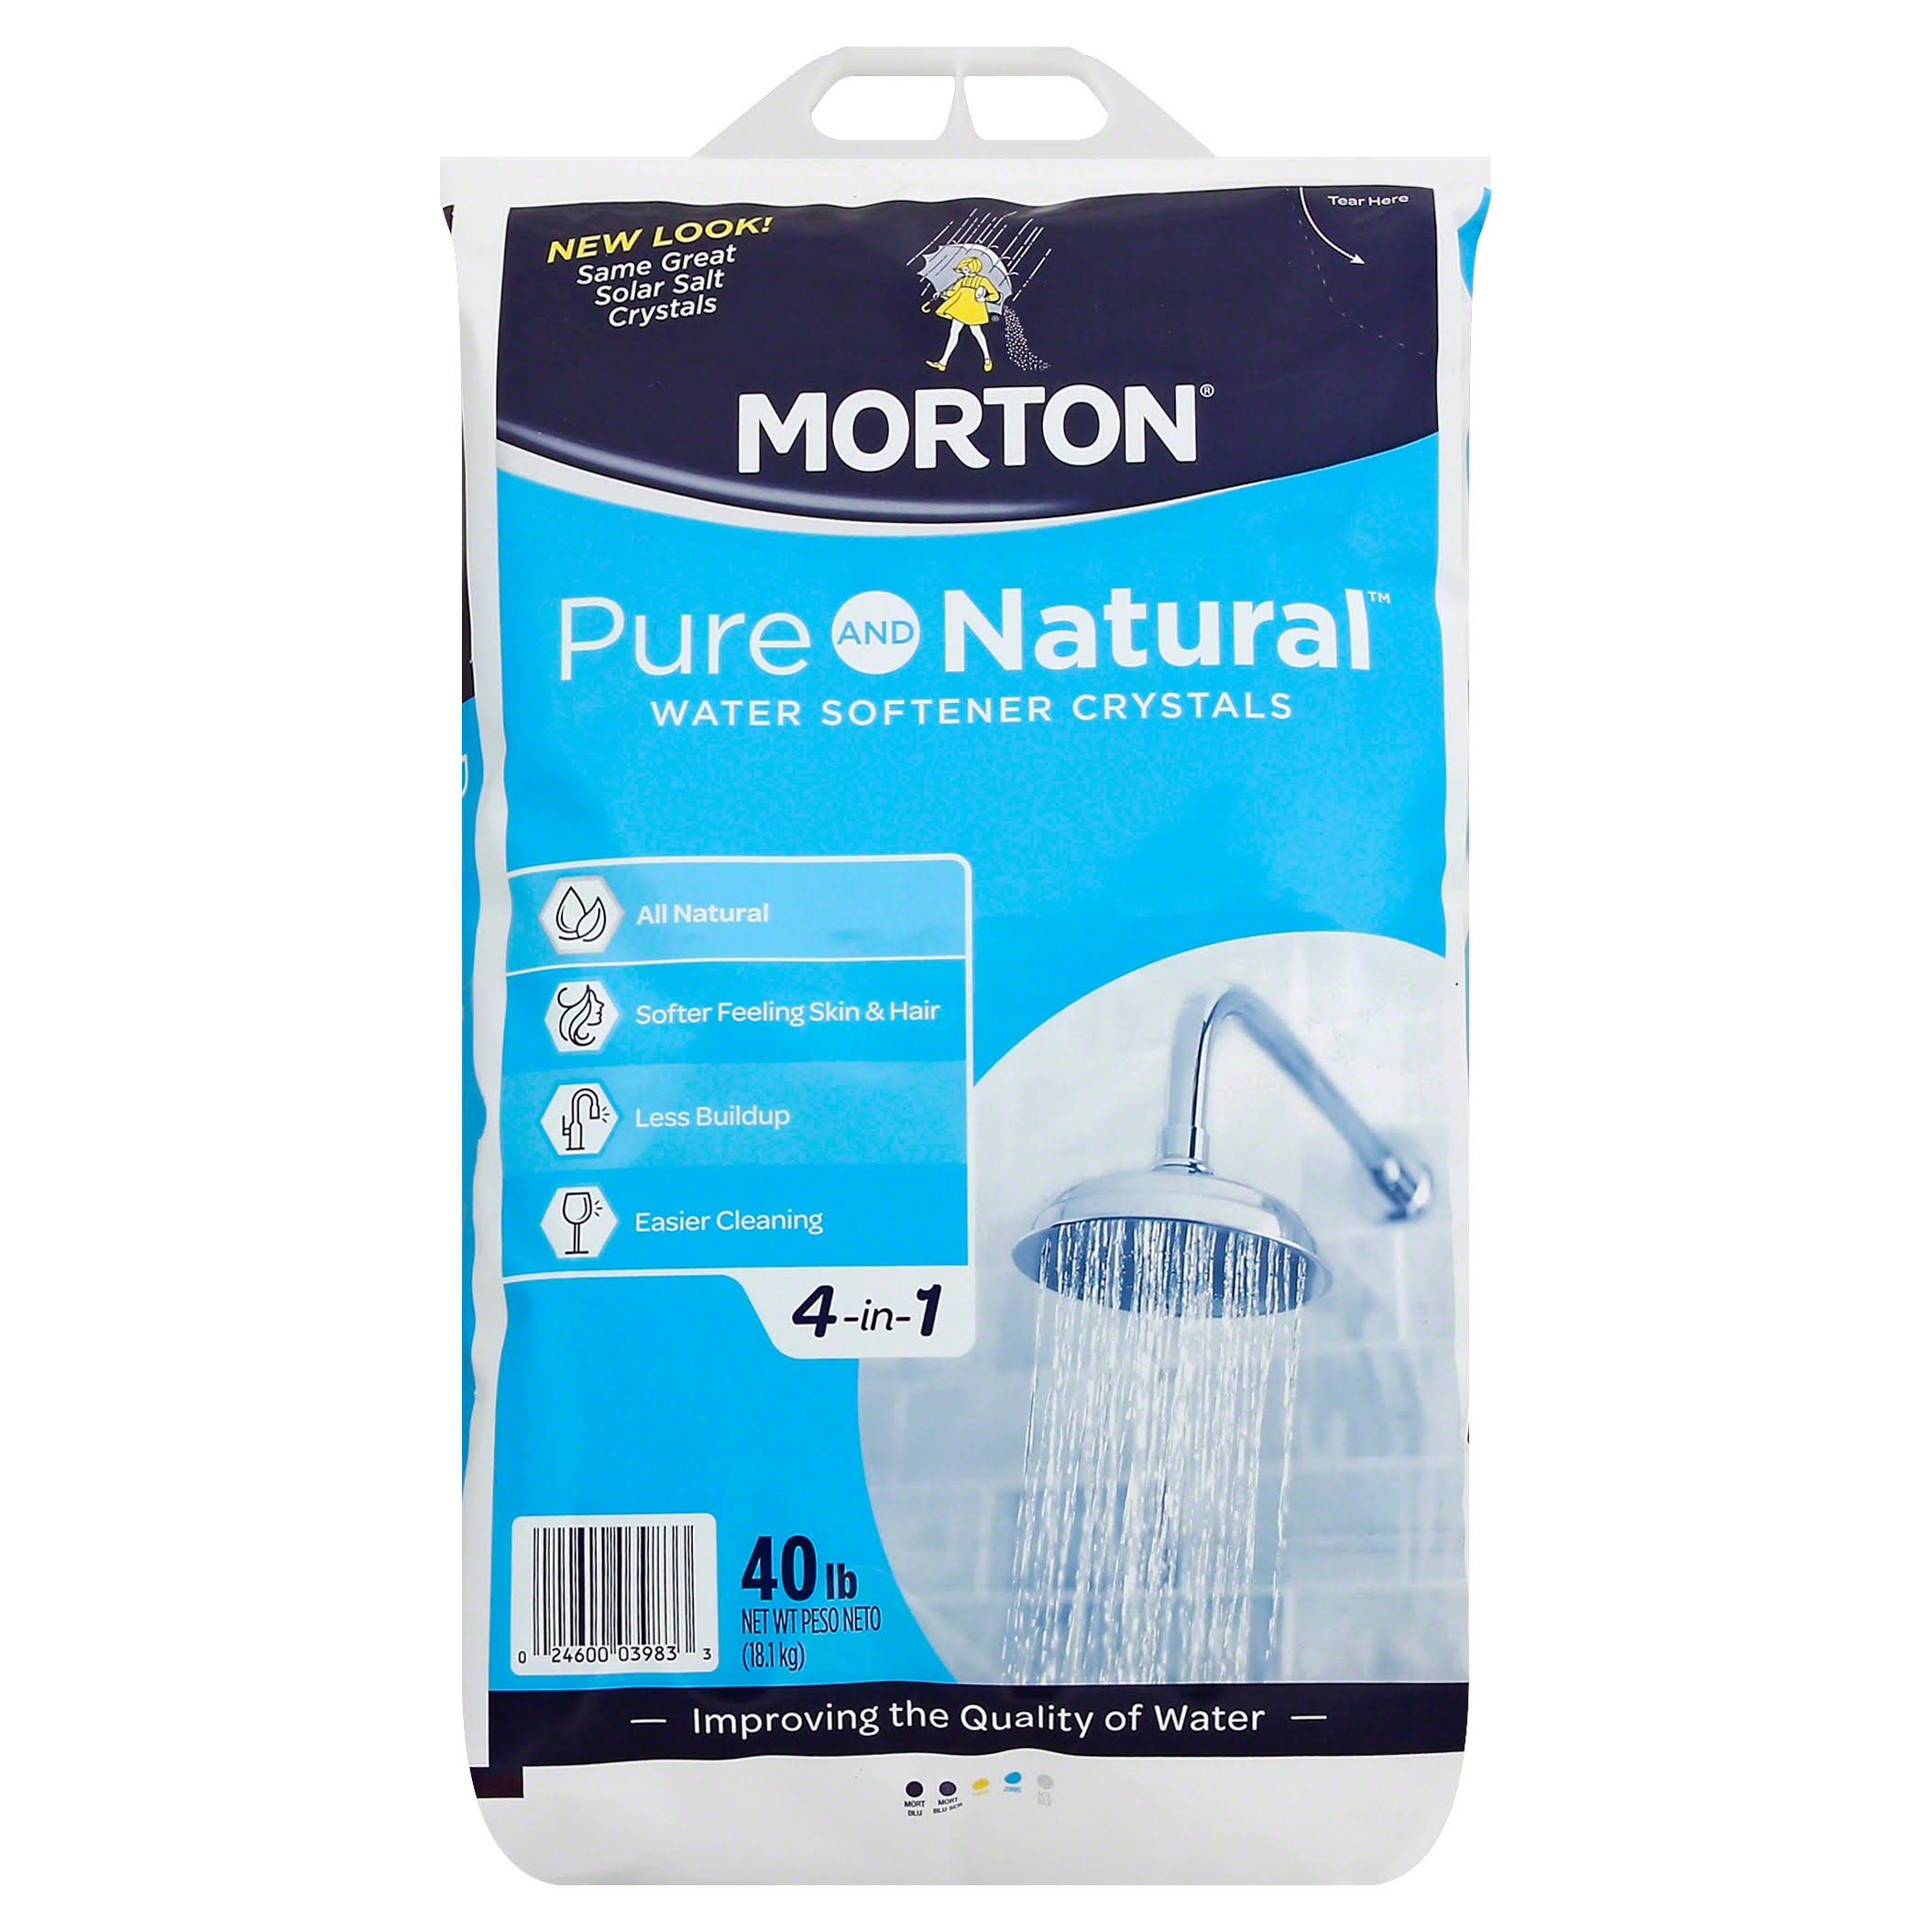 Morton U26624S Solar Salt Water Softening Crystals - 40lb, All Natural